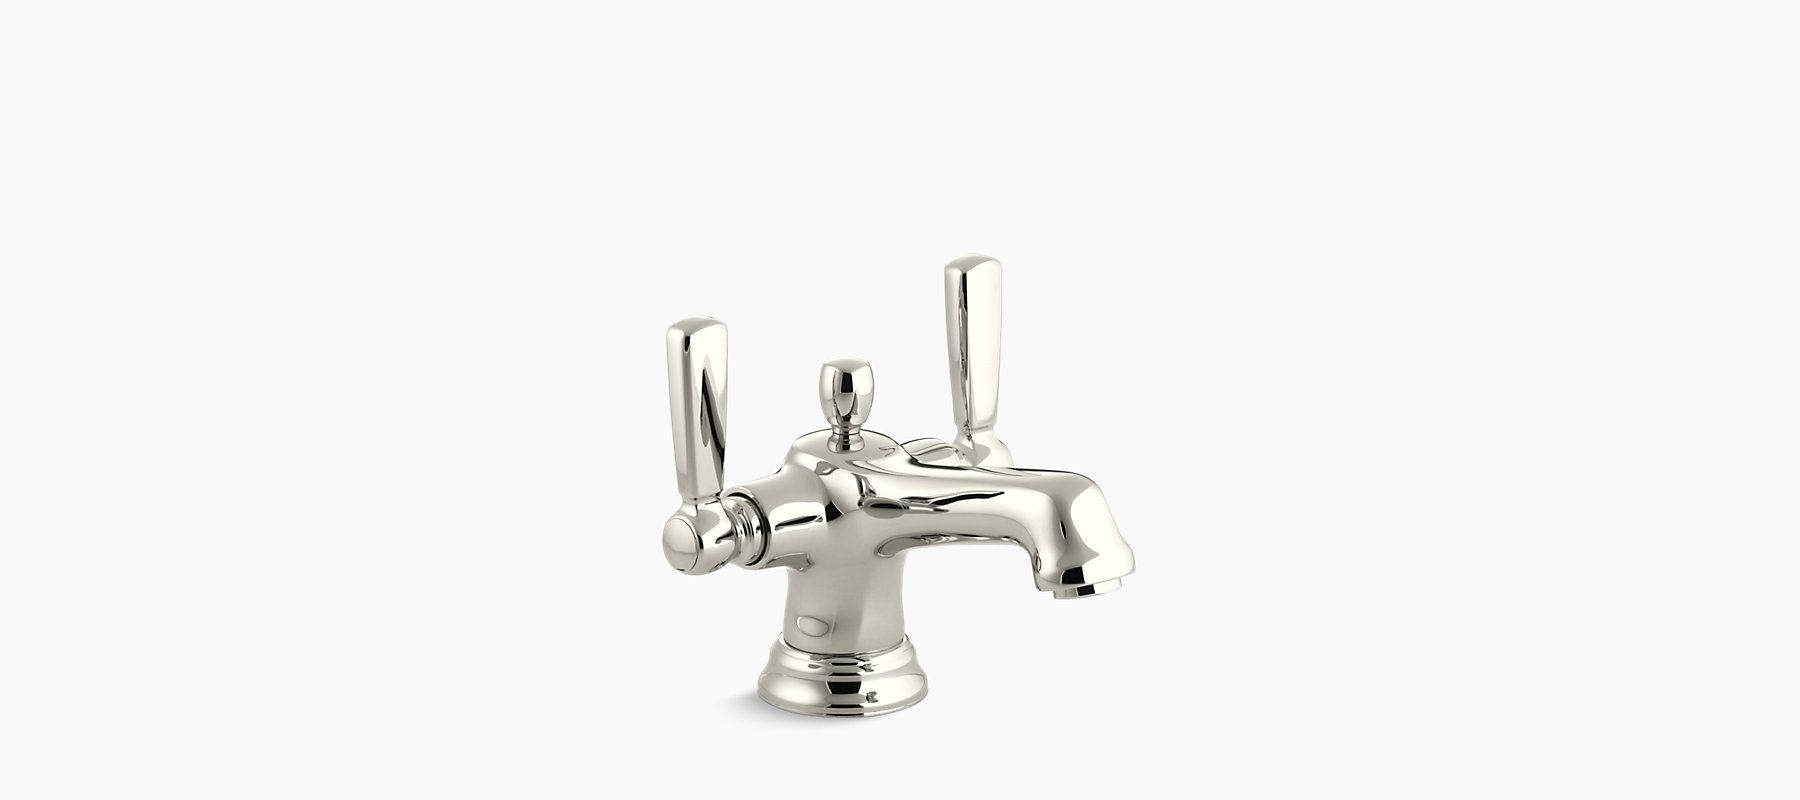 The ADA-compliant K-10579-4 faucet offers charming vintage style for ...